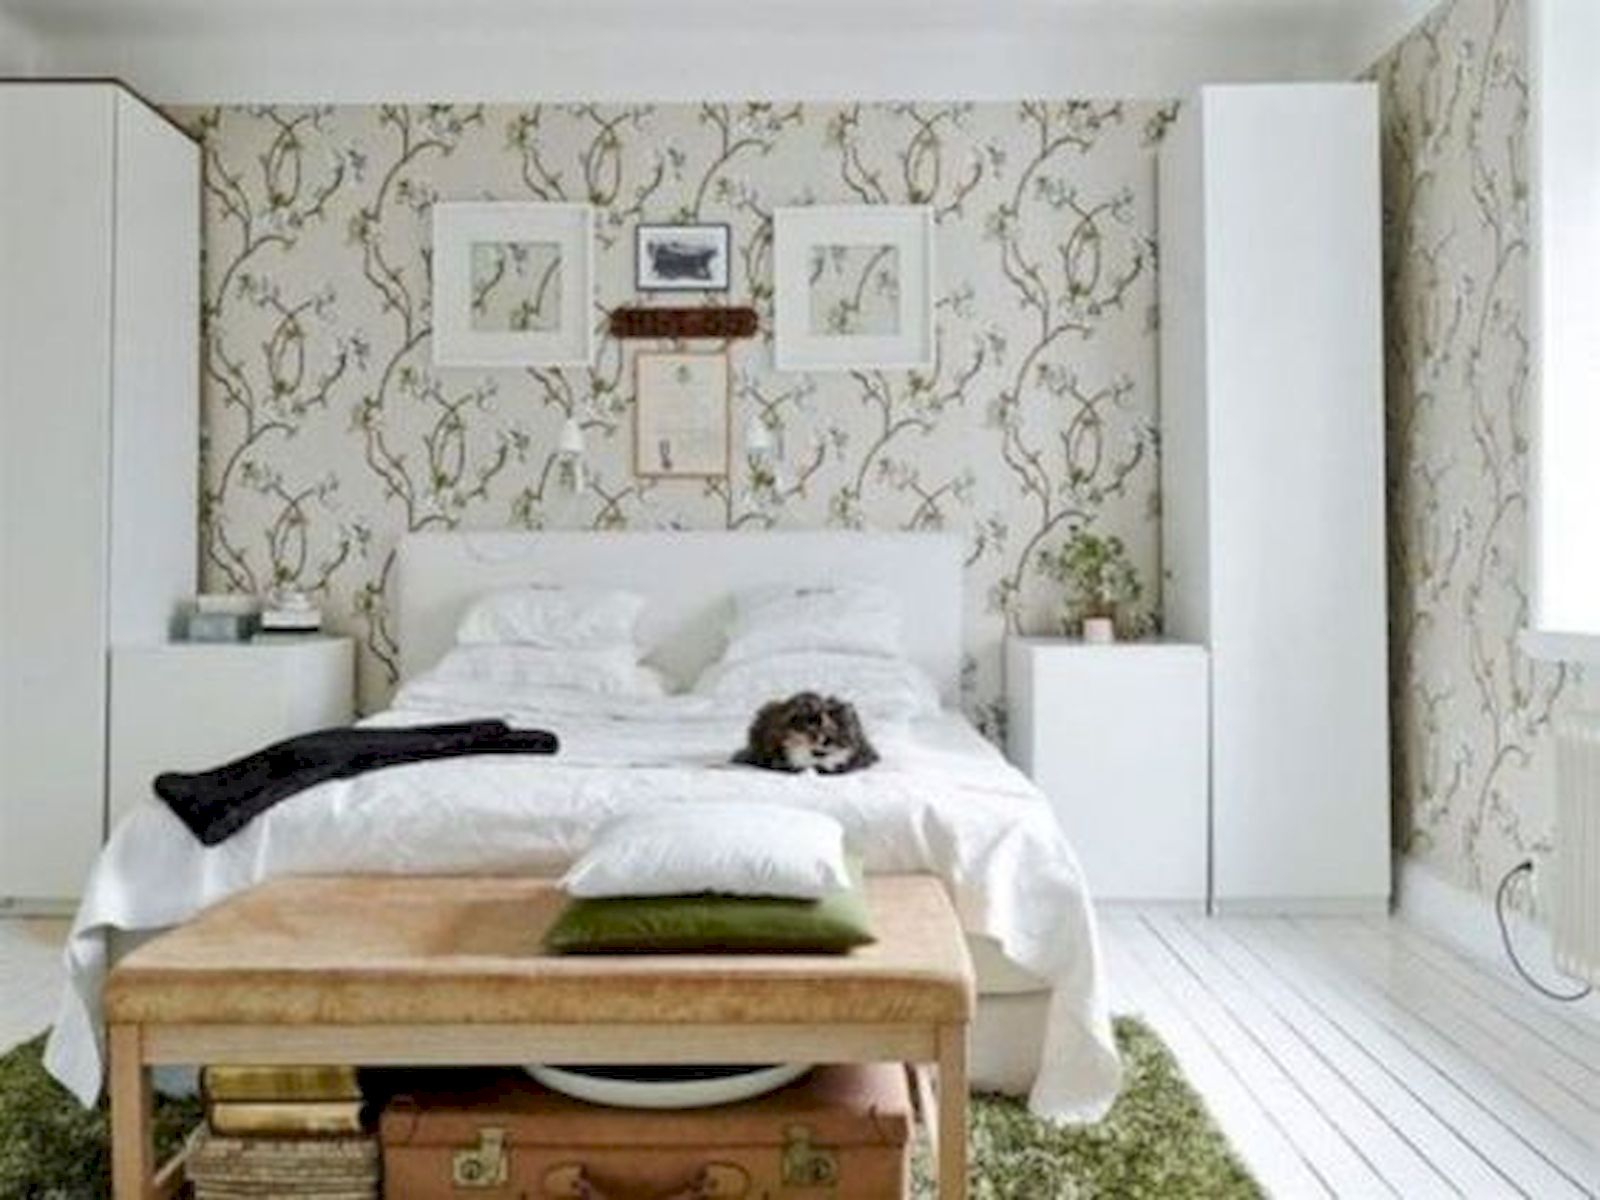 60 Brilliant Space Saving Ideas For Small Bedroom (6)